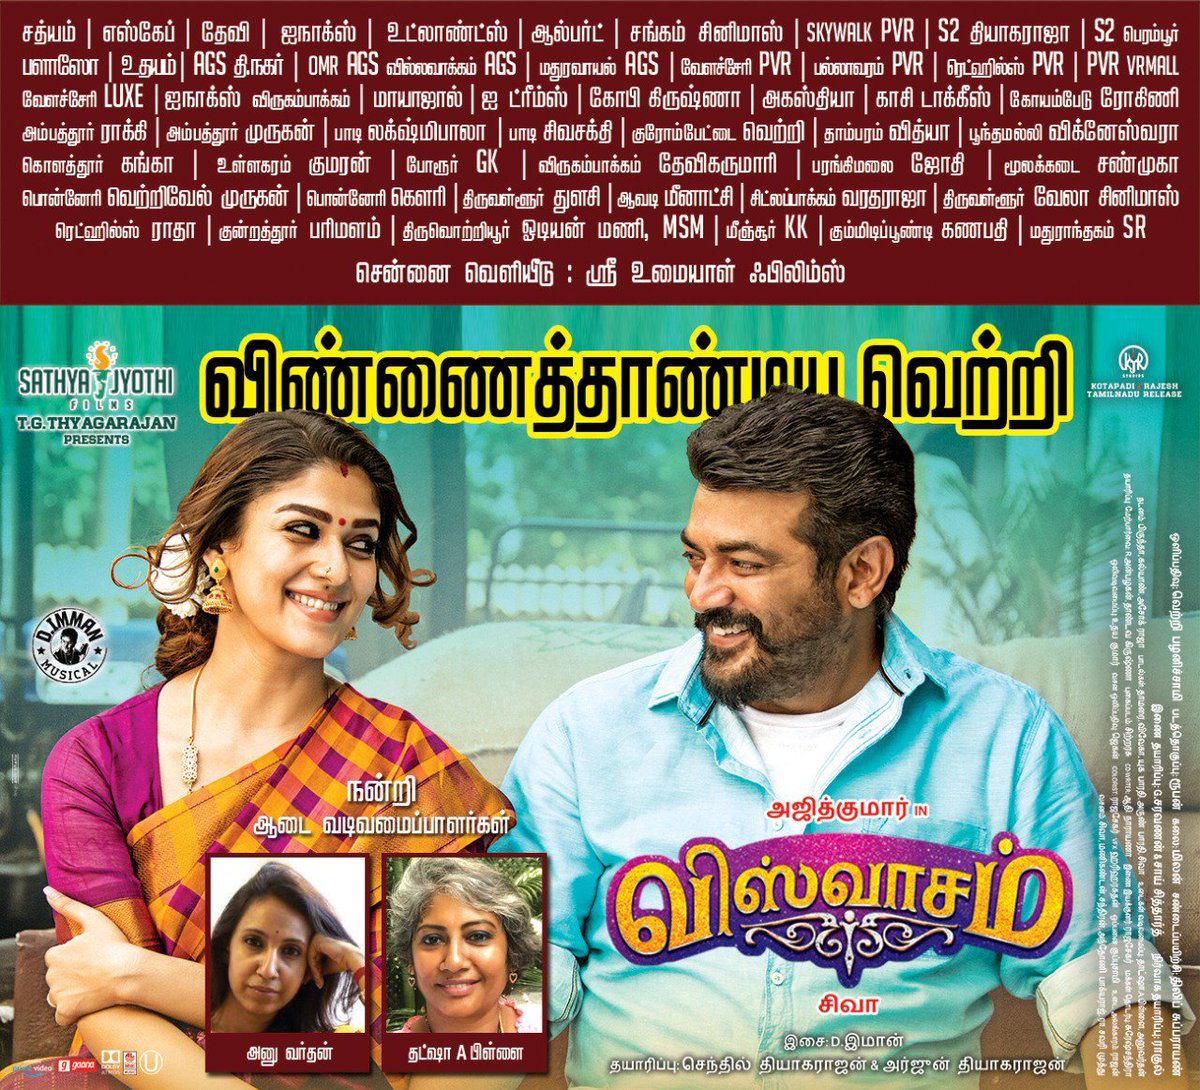 Hearty Thanks to our Costume Designers, Dhatsha A Pillai & Anu Vardhan from the entire team of Sathya Jyothi Films.  #Viswasam tomorrow's paper ad.  @directorsiva @SureshChandraa @immancomposer @vetrivisuals @AntonyLRuben @dhilipaction @DoneChannel1